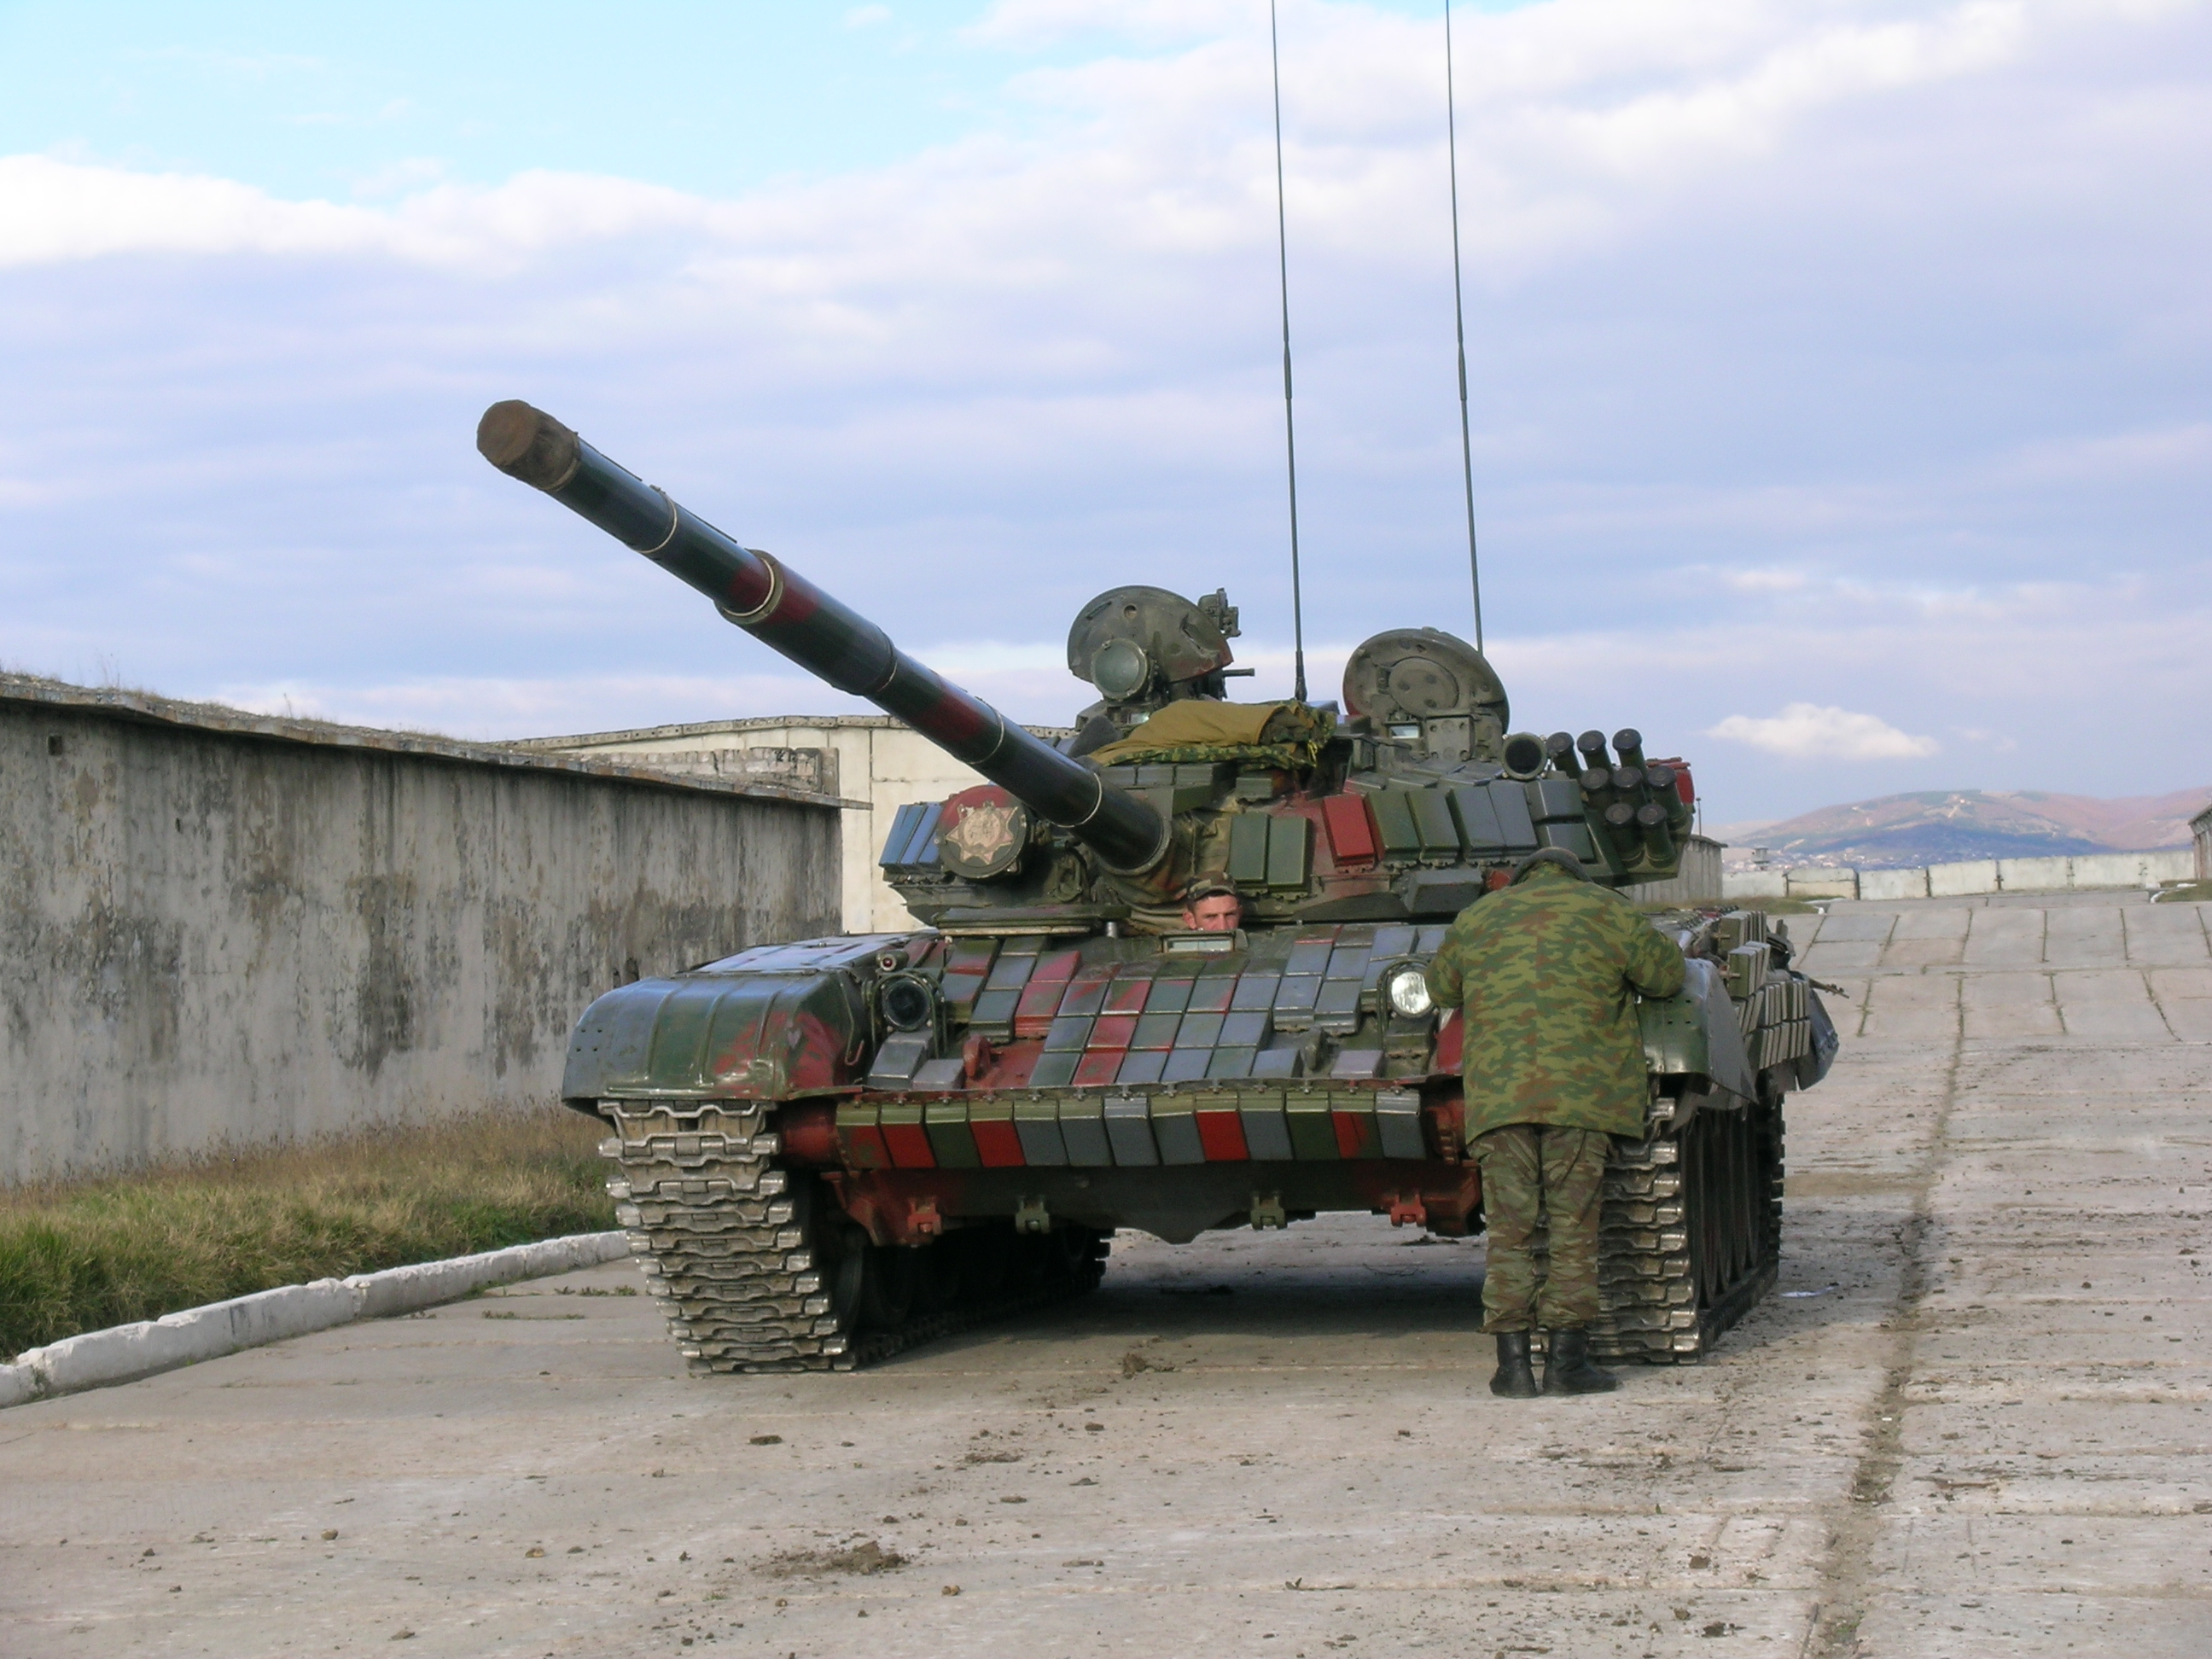 This T-72 tank is covered in ERA bricks.